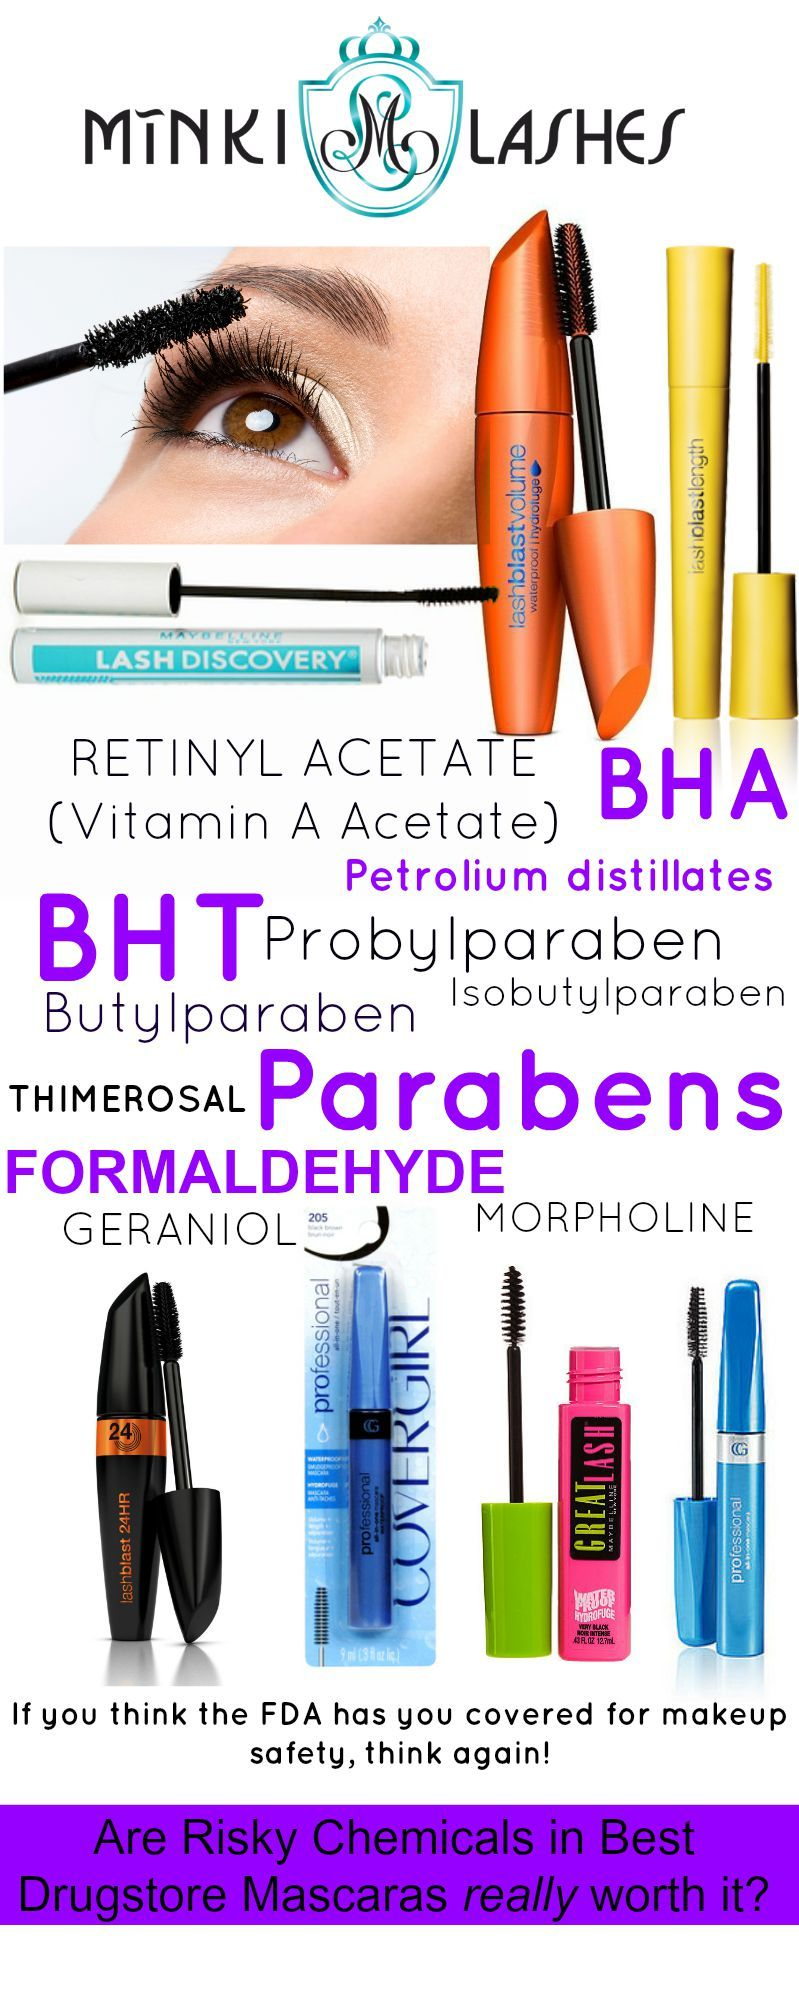 Are Risky Chemicals In Best Mascara Ever From Drugstore